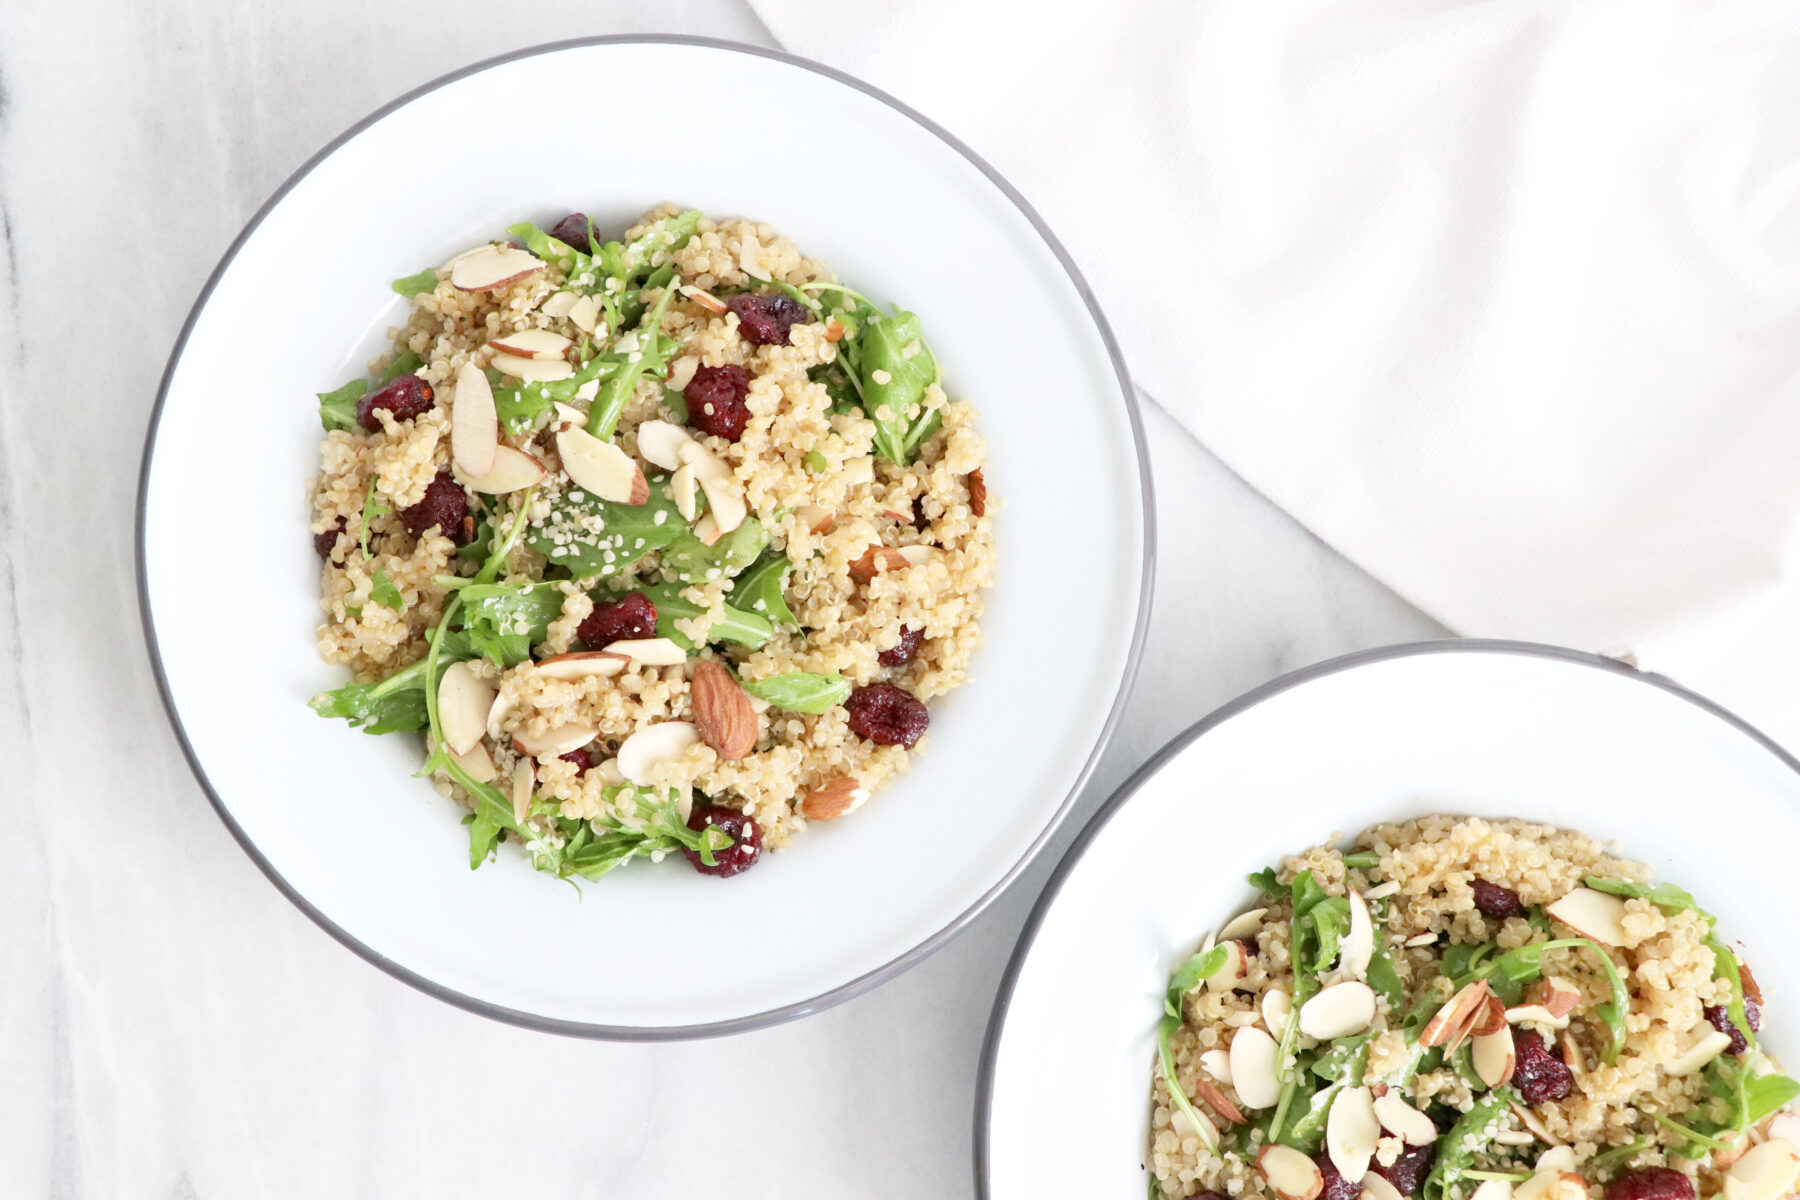 Cranberry Quinoa Salad | Quick + Healthy Recipe | HealthyGroceryGirl.com